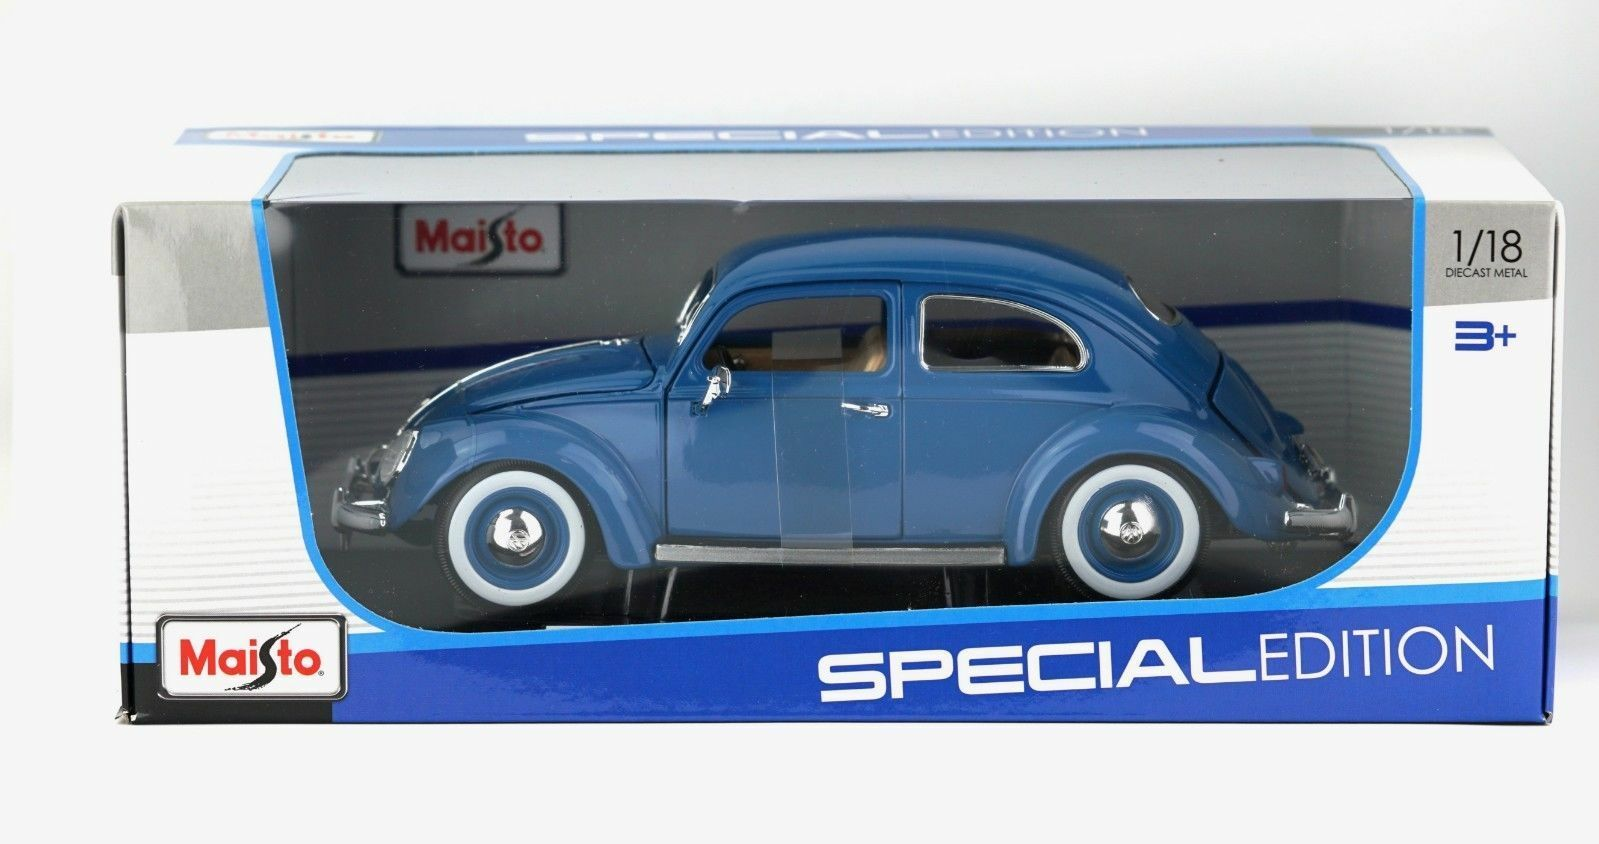 1955 Volkswagen Kafer-Beetle 1 18 Model Car Maisto Special Edition - New in Box